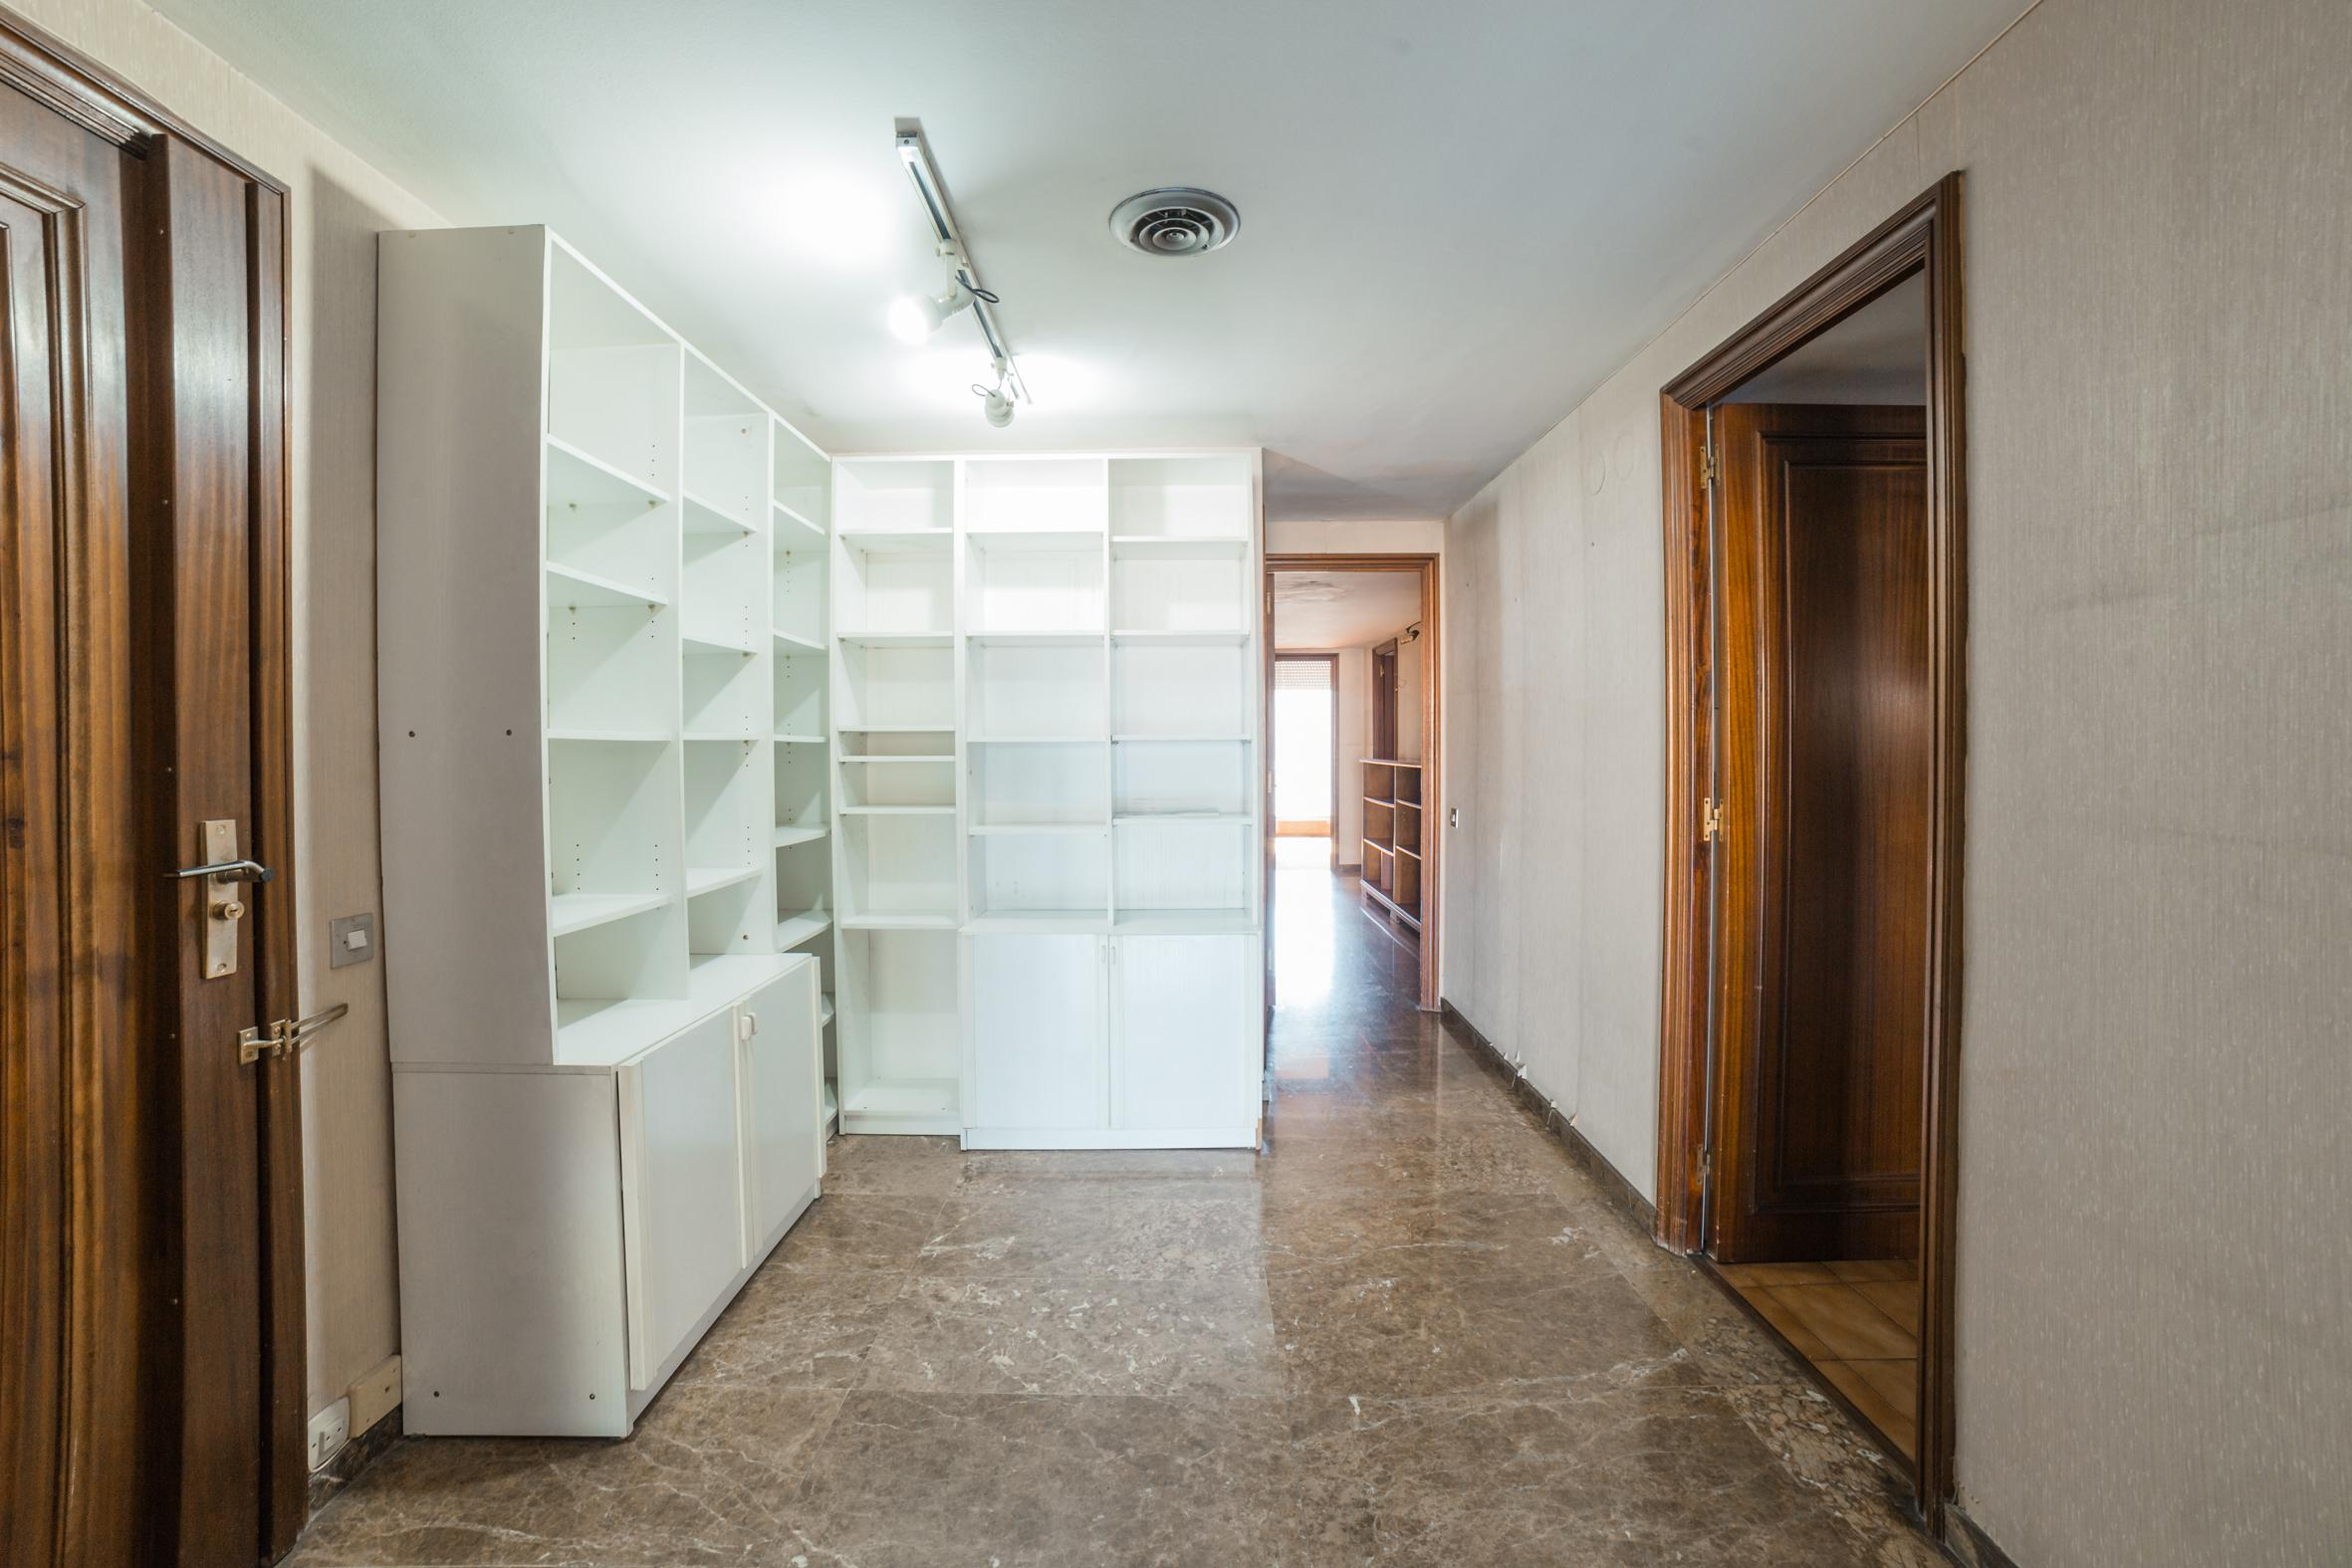 248988 Flat for sale in Les Corts, Les Corts 28